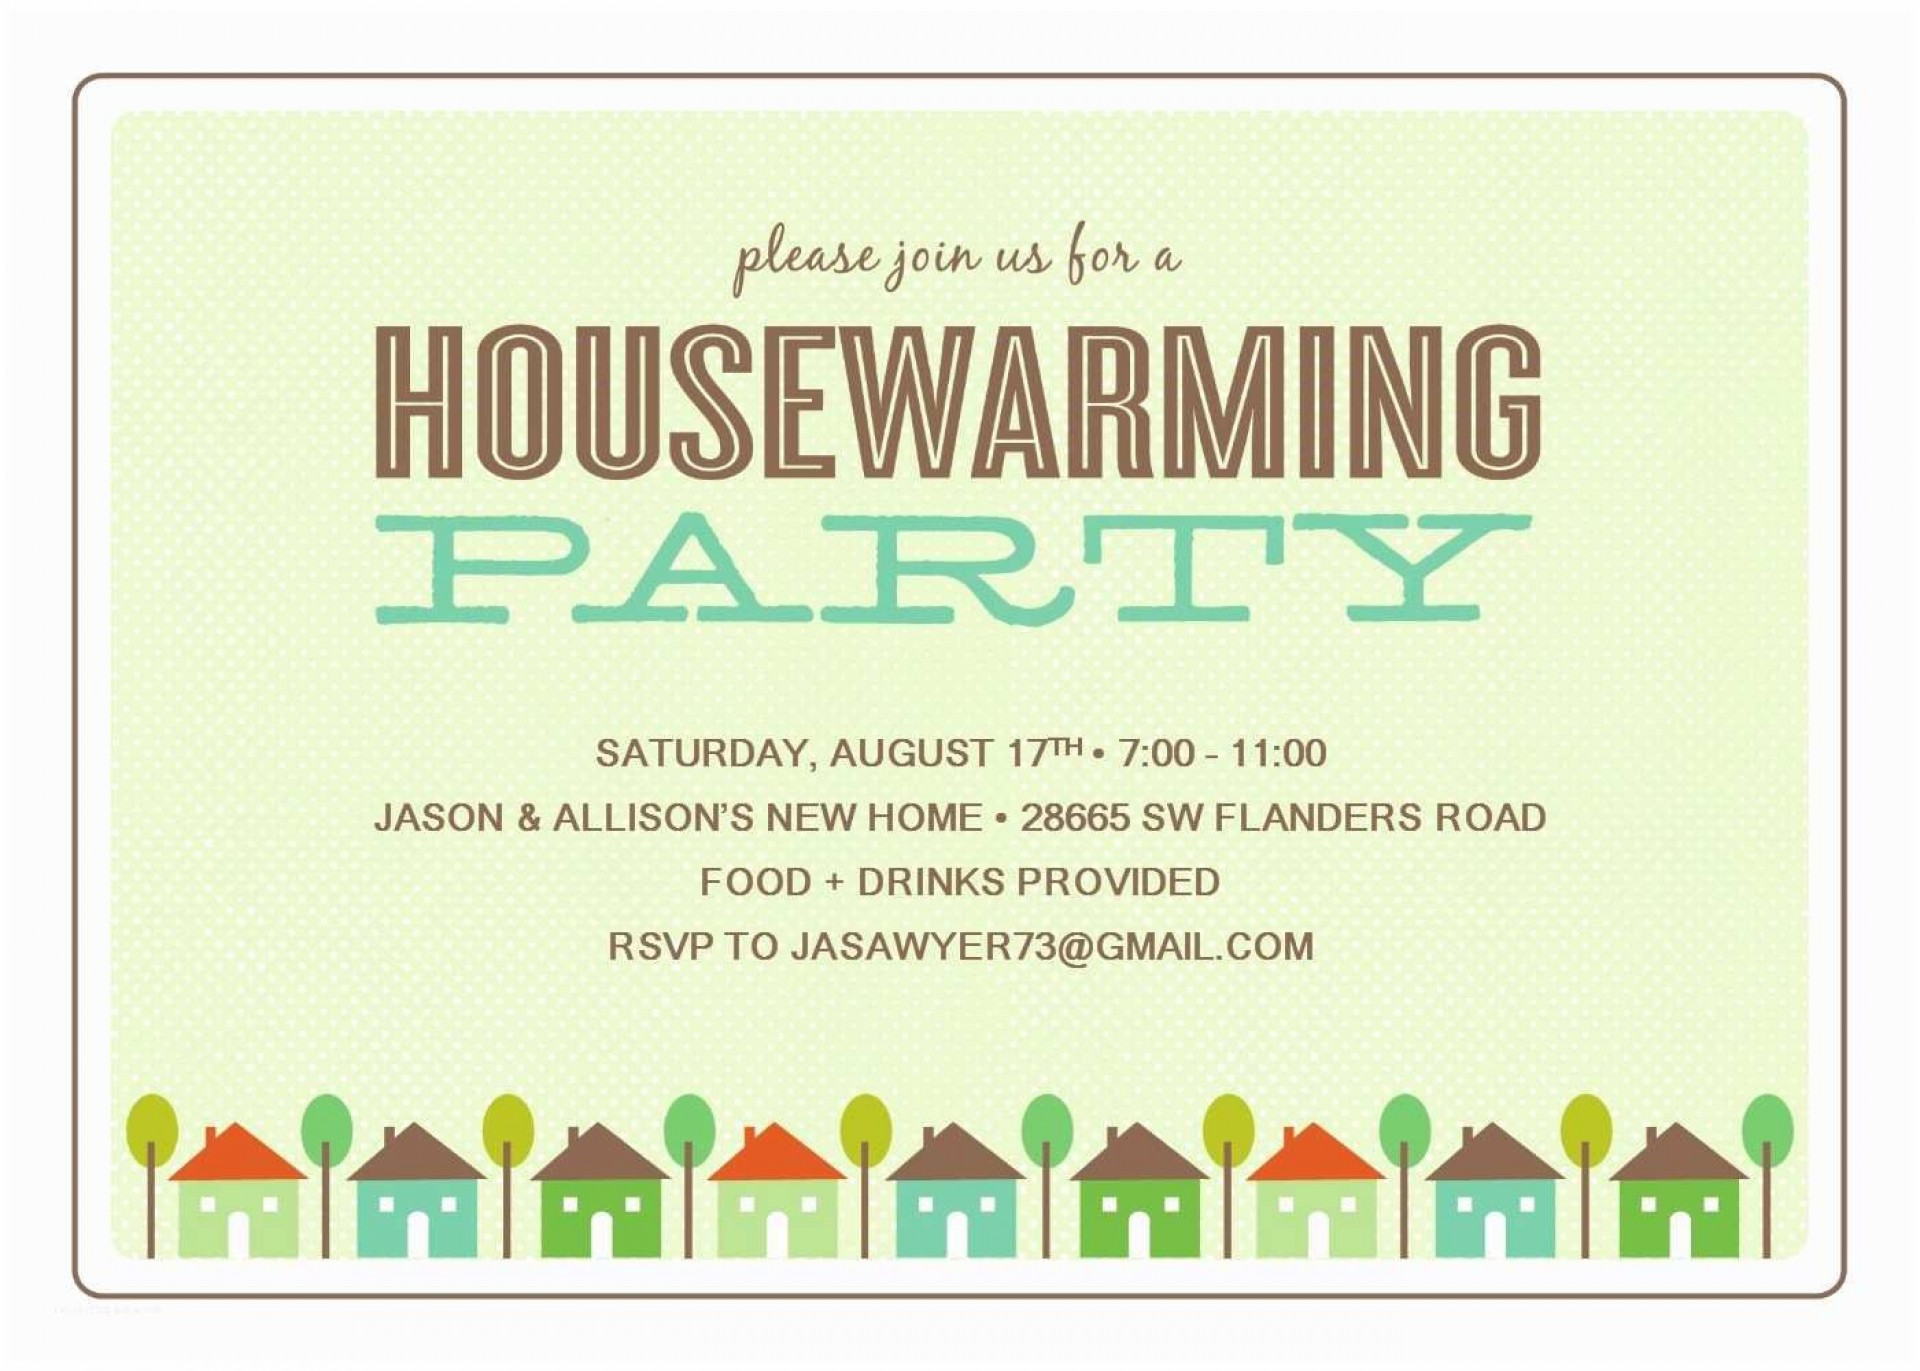 012 Unusual Housewarming Party Invitation Template Design  Templates Free Download Card1920